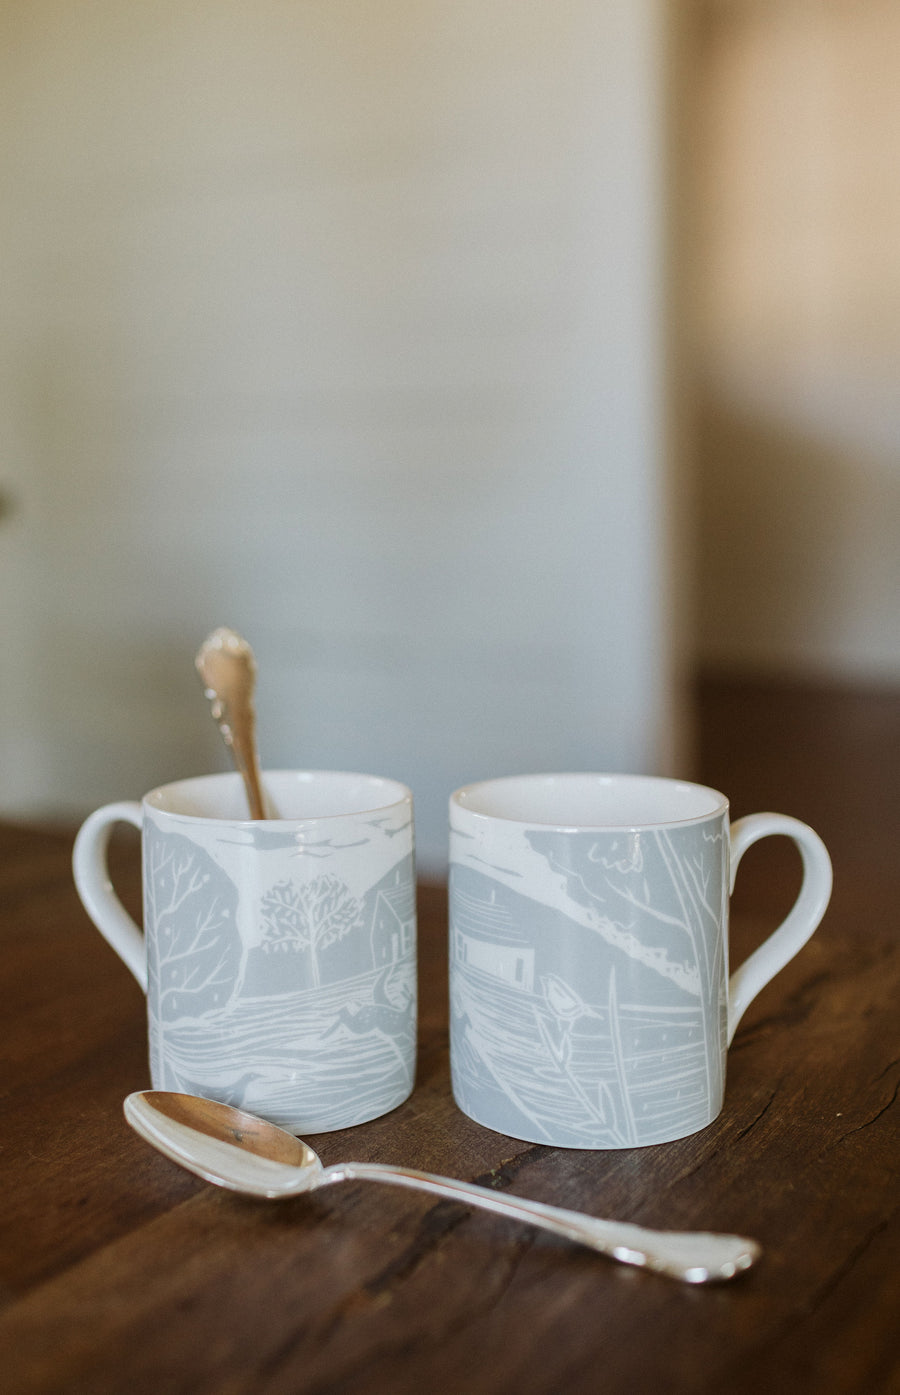 Briton Home offers fine bone china mugs made in England